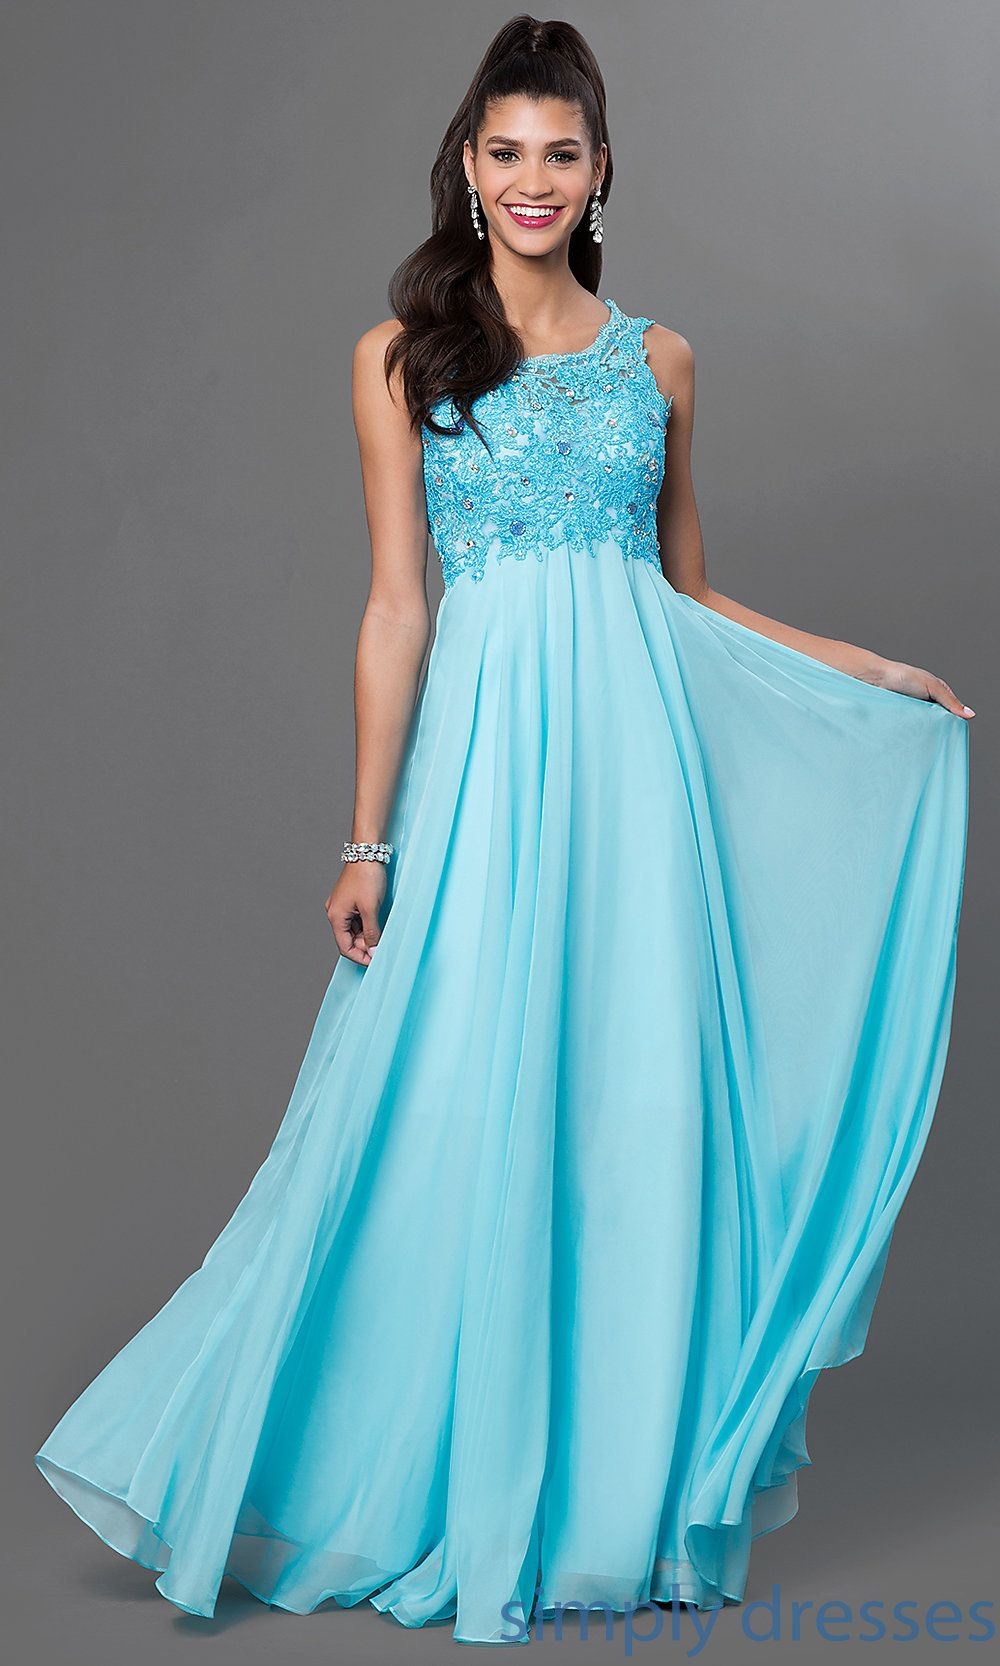 Homecoming Dresses, Formal Prom Dresses, Evening Wear: NA-8149 ...